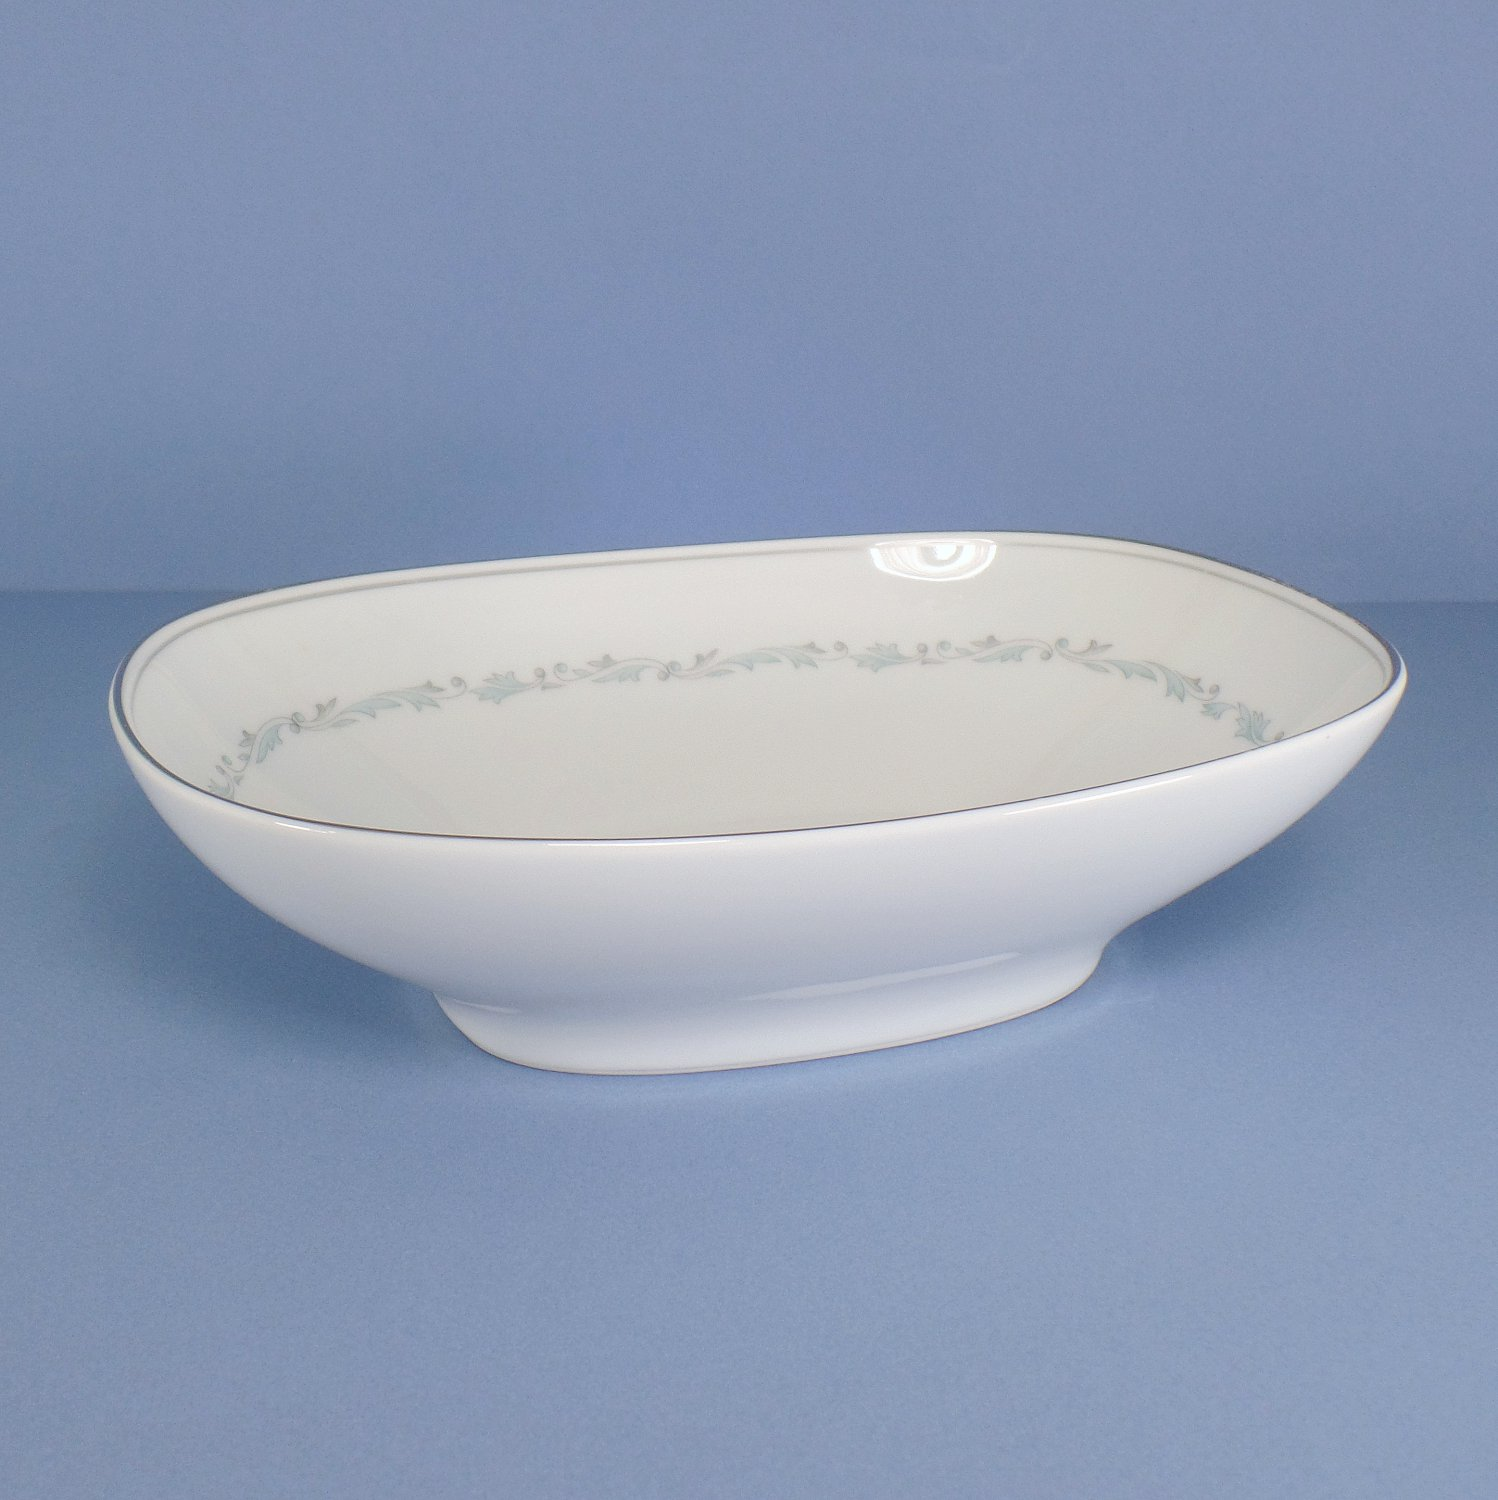 Noritake Brooklane Oval Vegetable Bowl 9 Inch